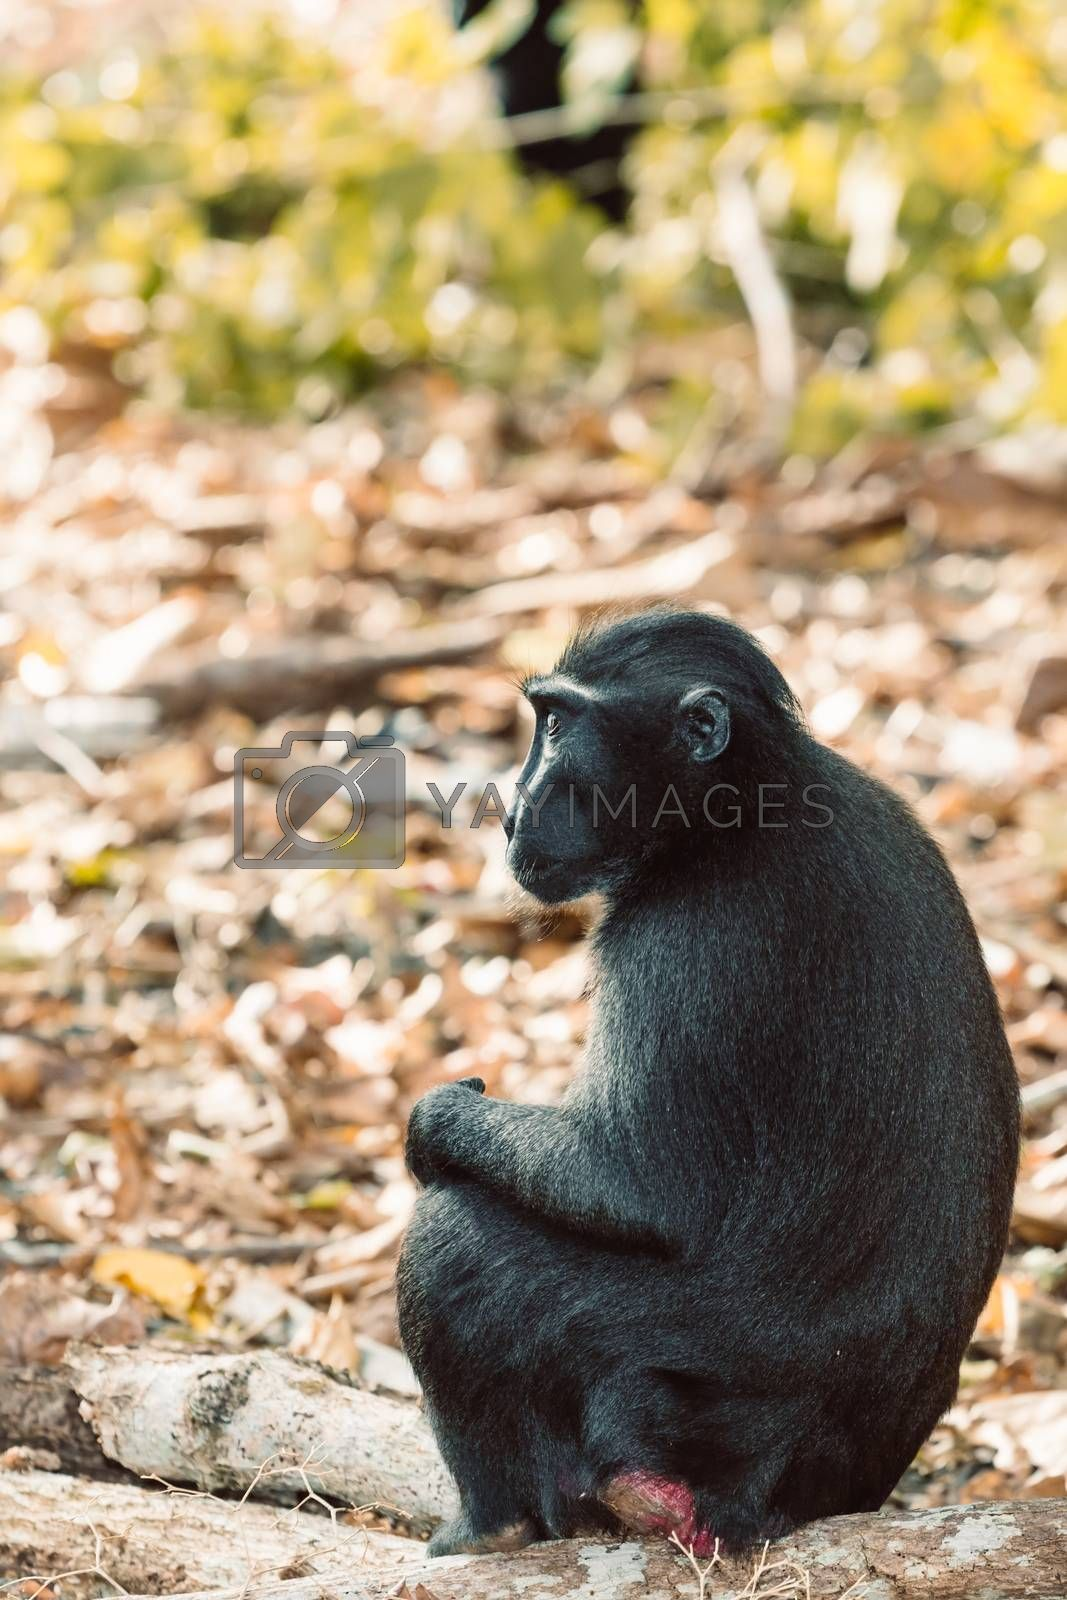 endemic monkey Celebes crested macaque known as black monkey (Macaca nigra) in rainforest, Tangkoko Nature Reserve in North Sulawesi, Indonesia wildlife